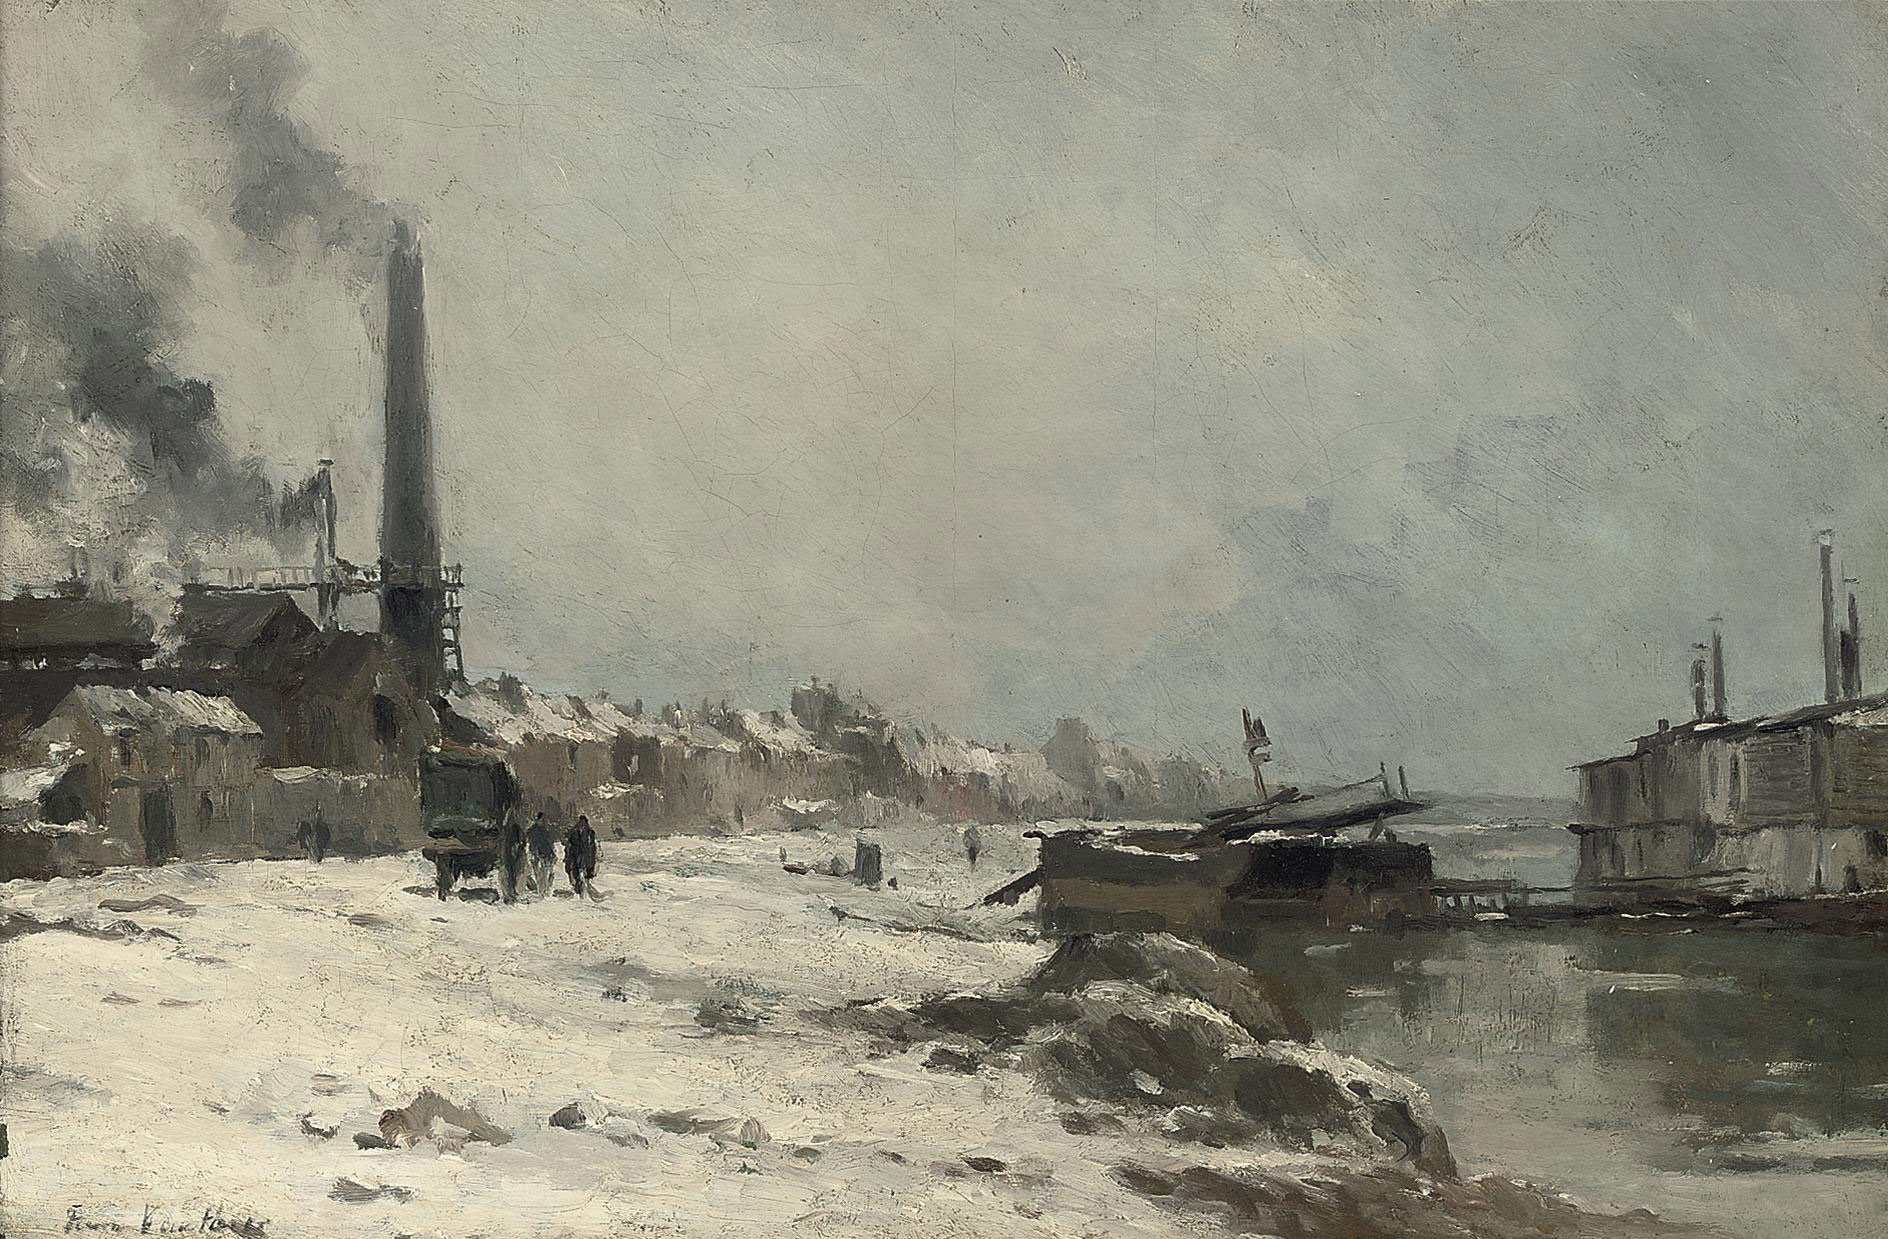 Figures by a factory on a river, winter